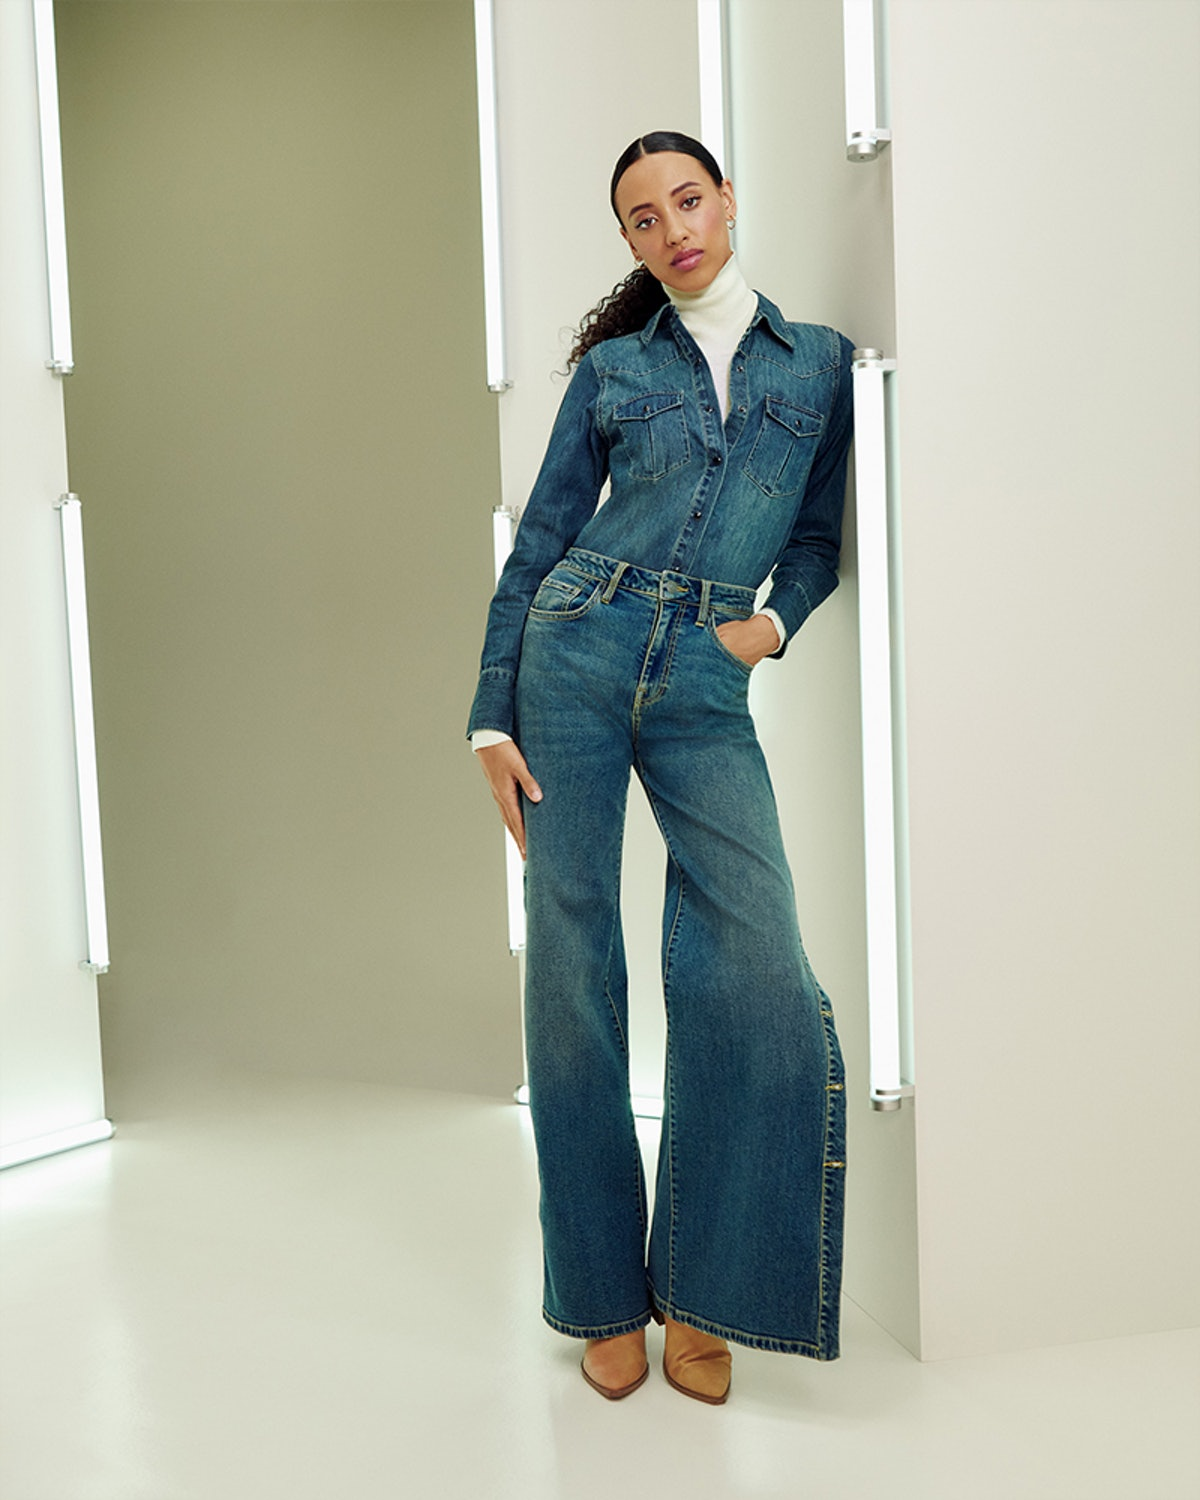 Model wears a look from Nili Lotan's line from Target's Fall Designer Collection.